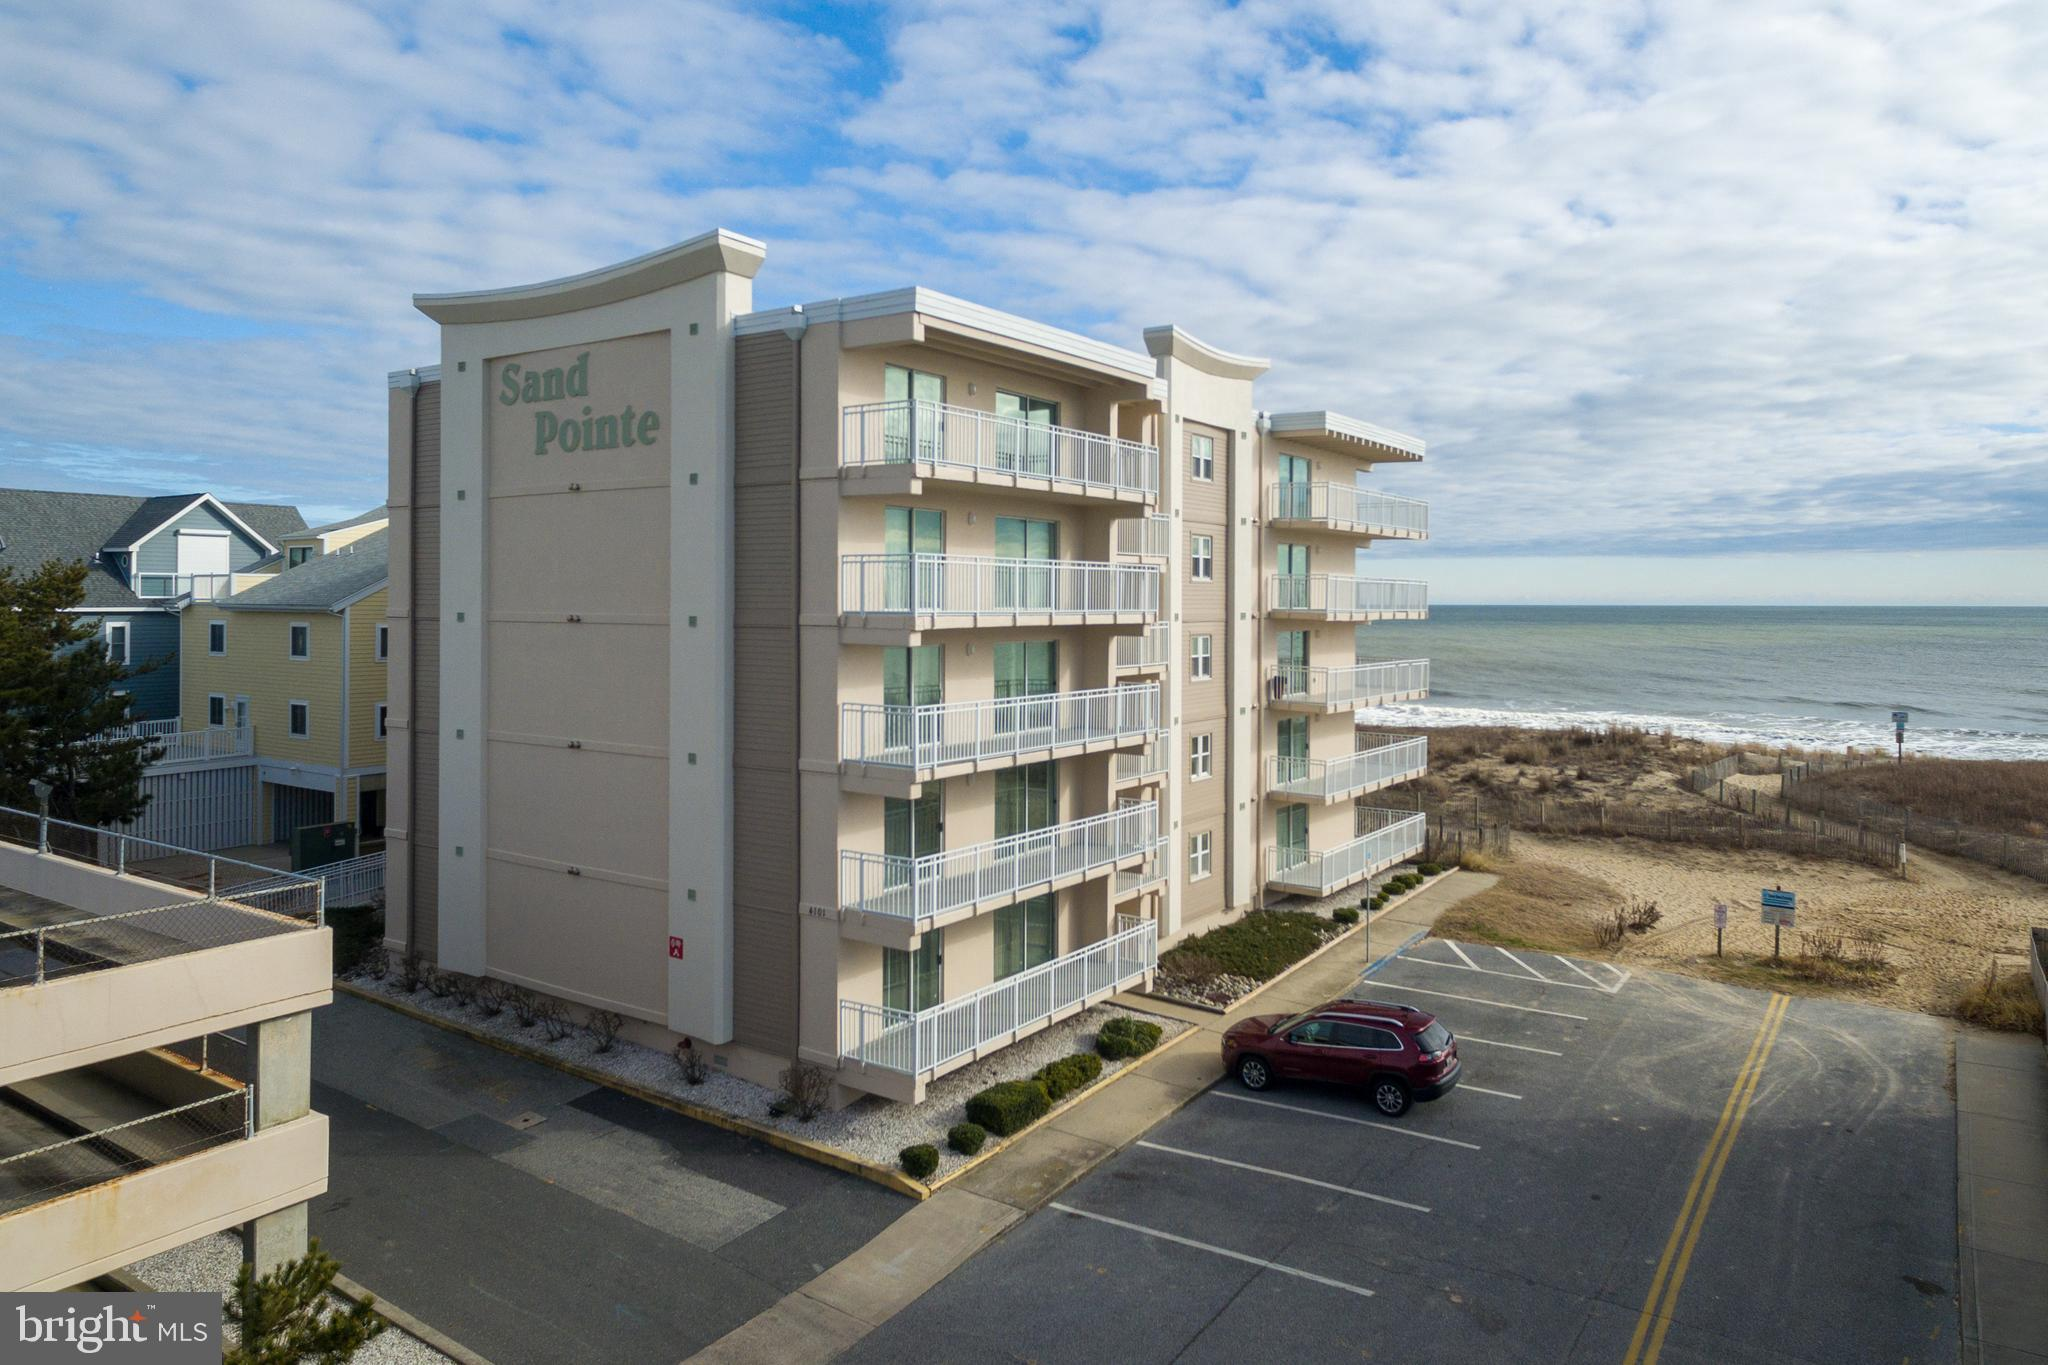 Popular Oceanfront Building, Sand Pointe, in mid-town offering a 3-bed/2-bath condo. Located on first floor, center. Spacious open floor plan with updated kitchen. Kitchen features new white shaker cabinets, stainless appliances and granite counters - really nice! Oceanfront primary bedroom with own bath and balcony access. Generous sized living area with view and balcony.  Storage closets, guest bath, washer and dryer and 2 large guest bedrooms complete this great beach property.  Owner previously rented but no rental to honor for 2021. Easily could fill a rental calendar if buyer wishes, or would make an excellent vacation or even primary home. Parking garage offers 2 parking spaces for owners. This is a low density beach area, so beach not that crowded. Location is outstanding - midtown so close to so much. You are only moments away from restaurants, mini golf, entertainment, shopping and the Convention Center. Prime area to see St Pat's parade, too. Owner would love to sell fast, so bring an offer!